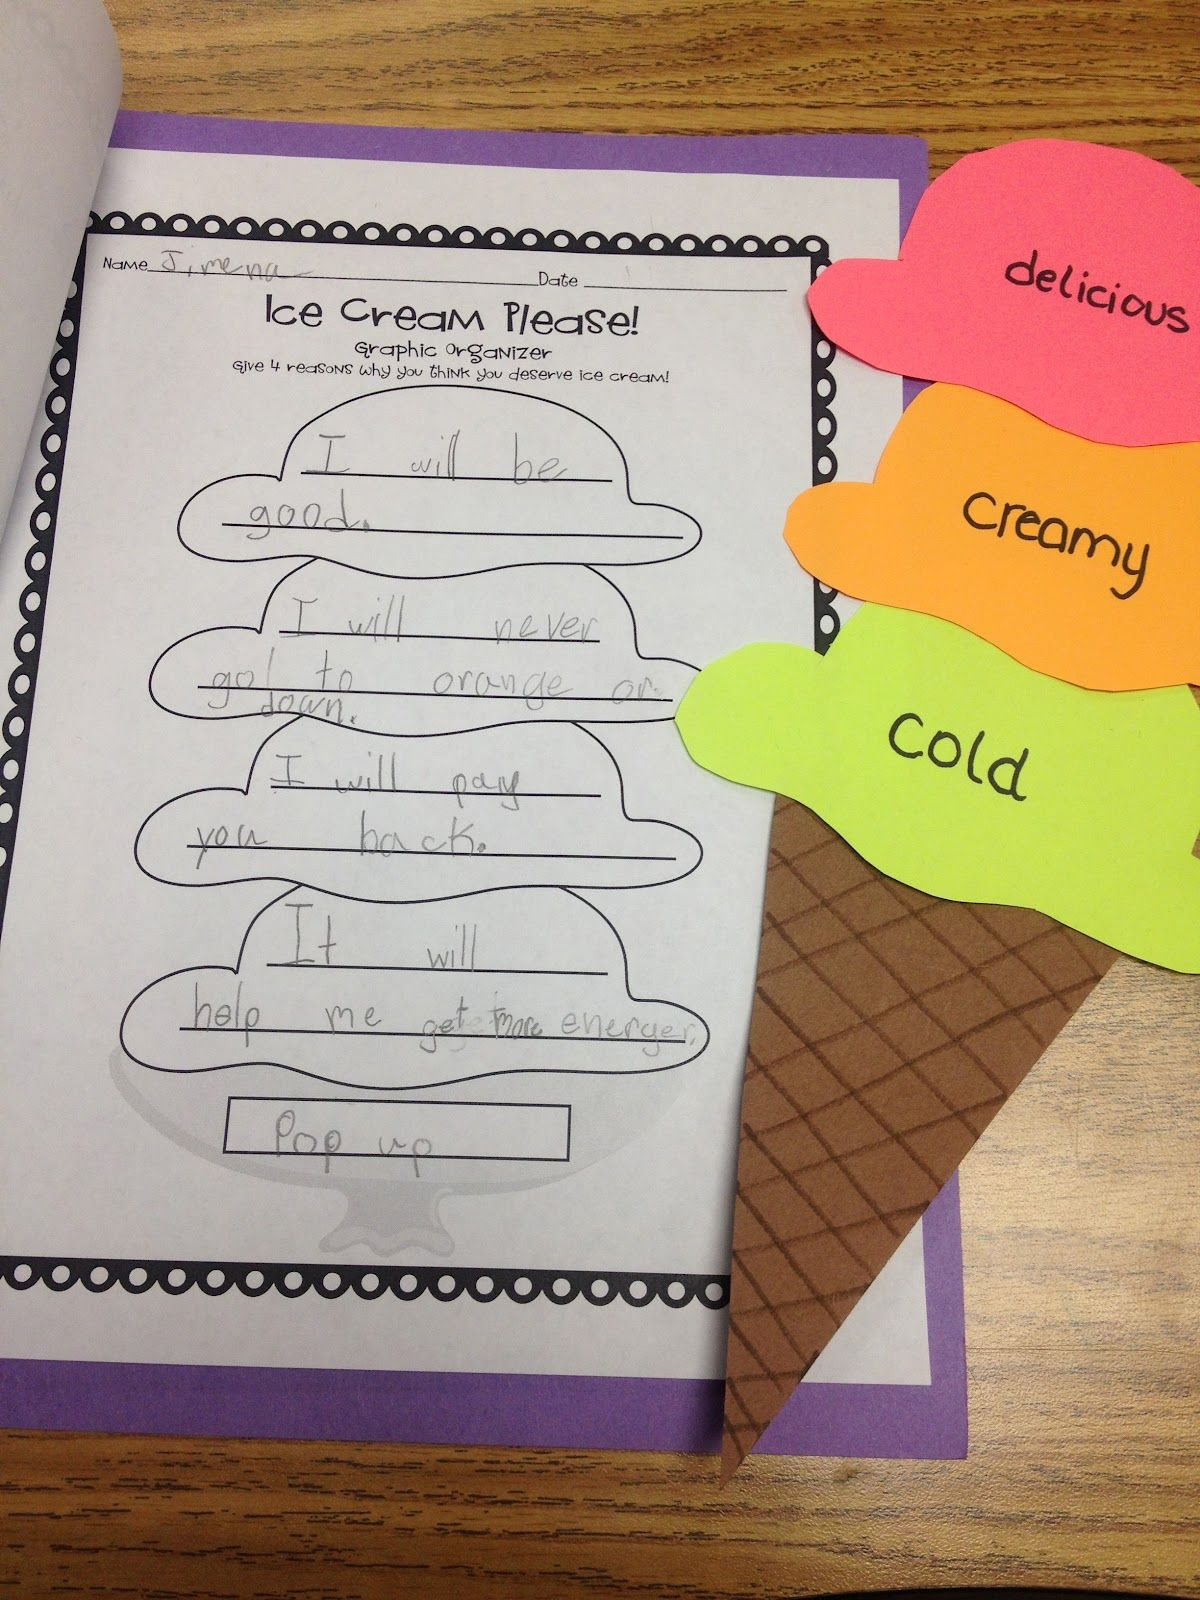 Students Were To Write A Letter And Try To Persuade Their